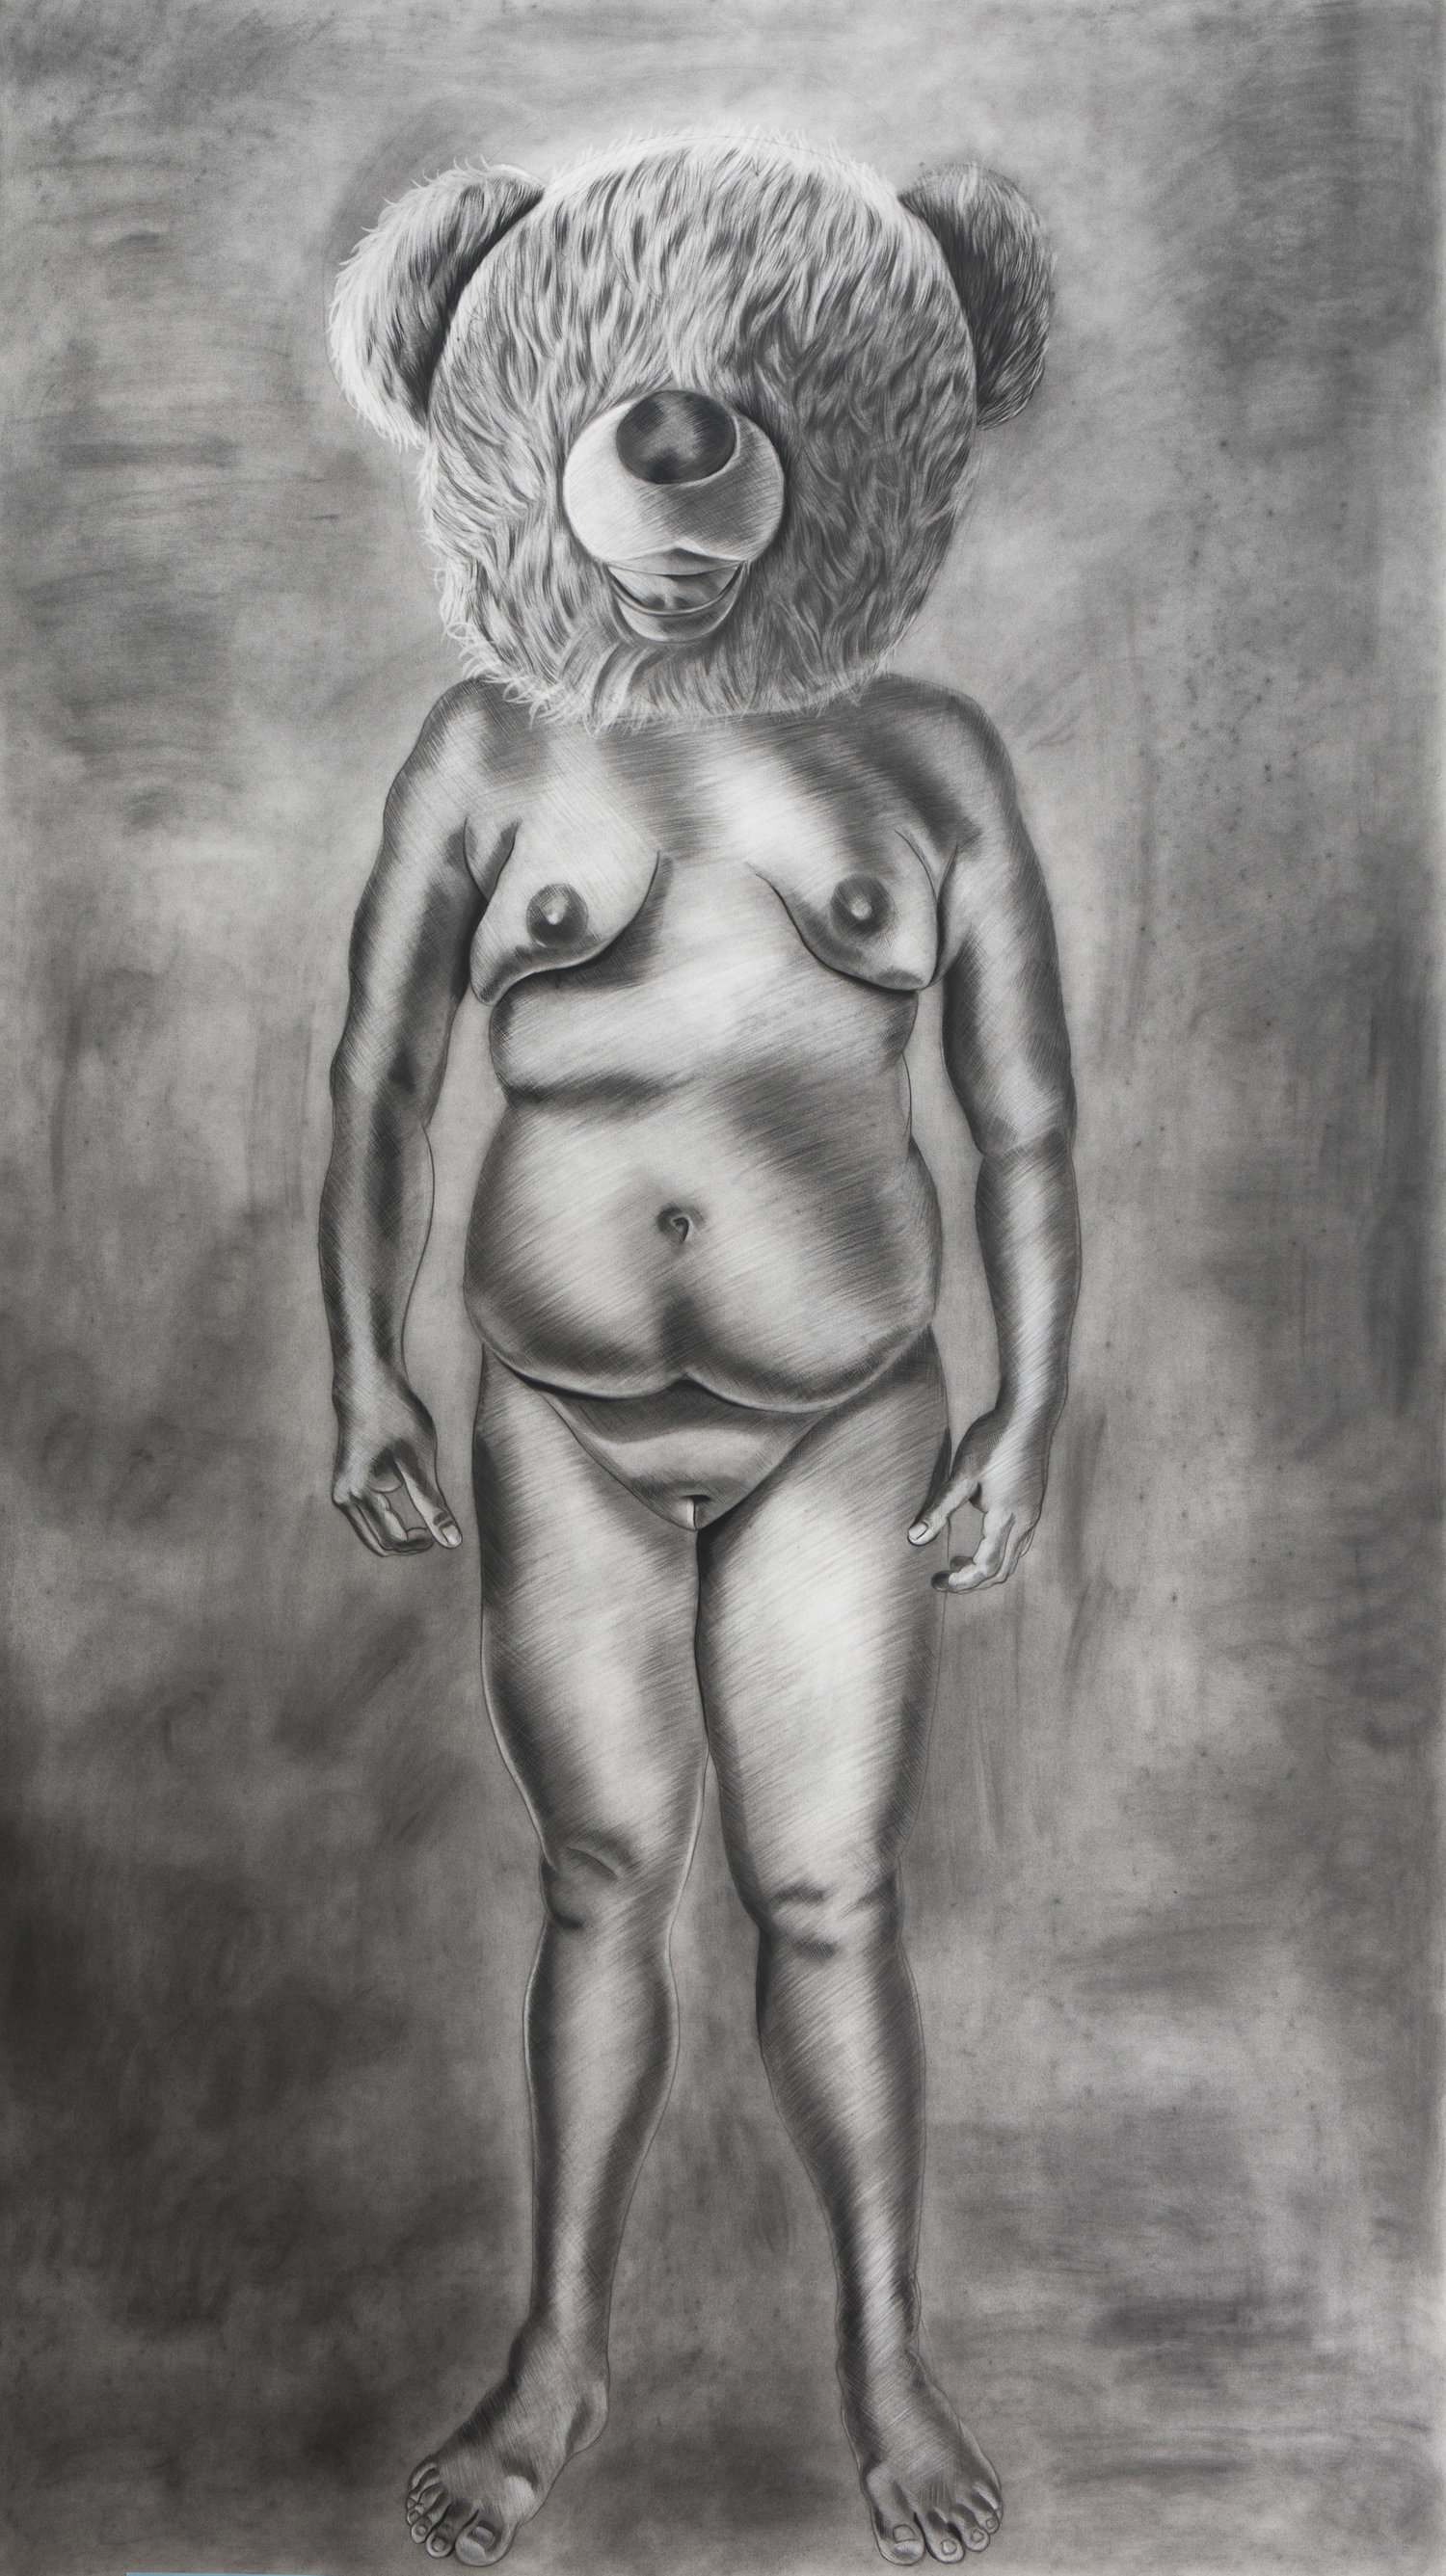 Untitled, 76.5 x 43.5 inches, charcoal on paper. 2017